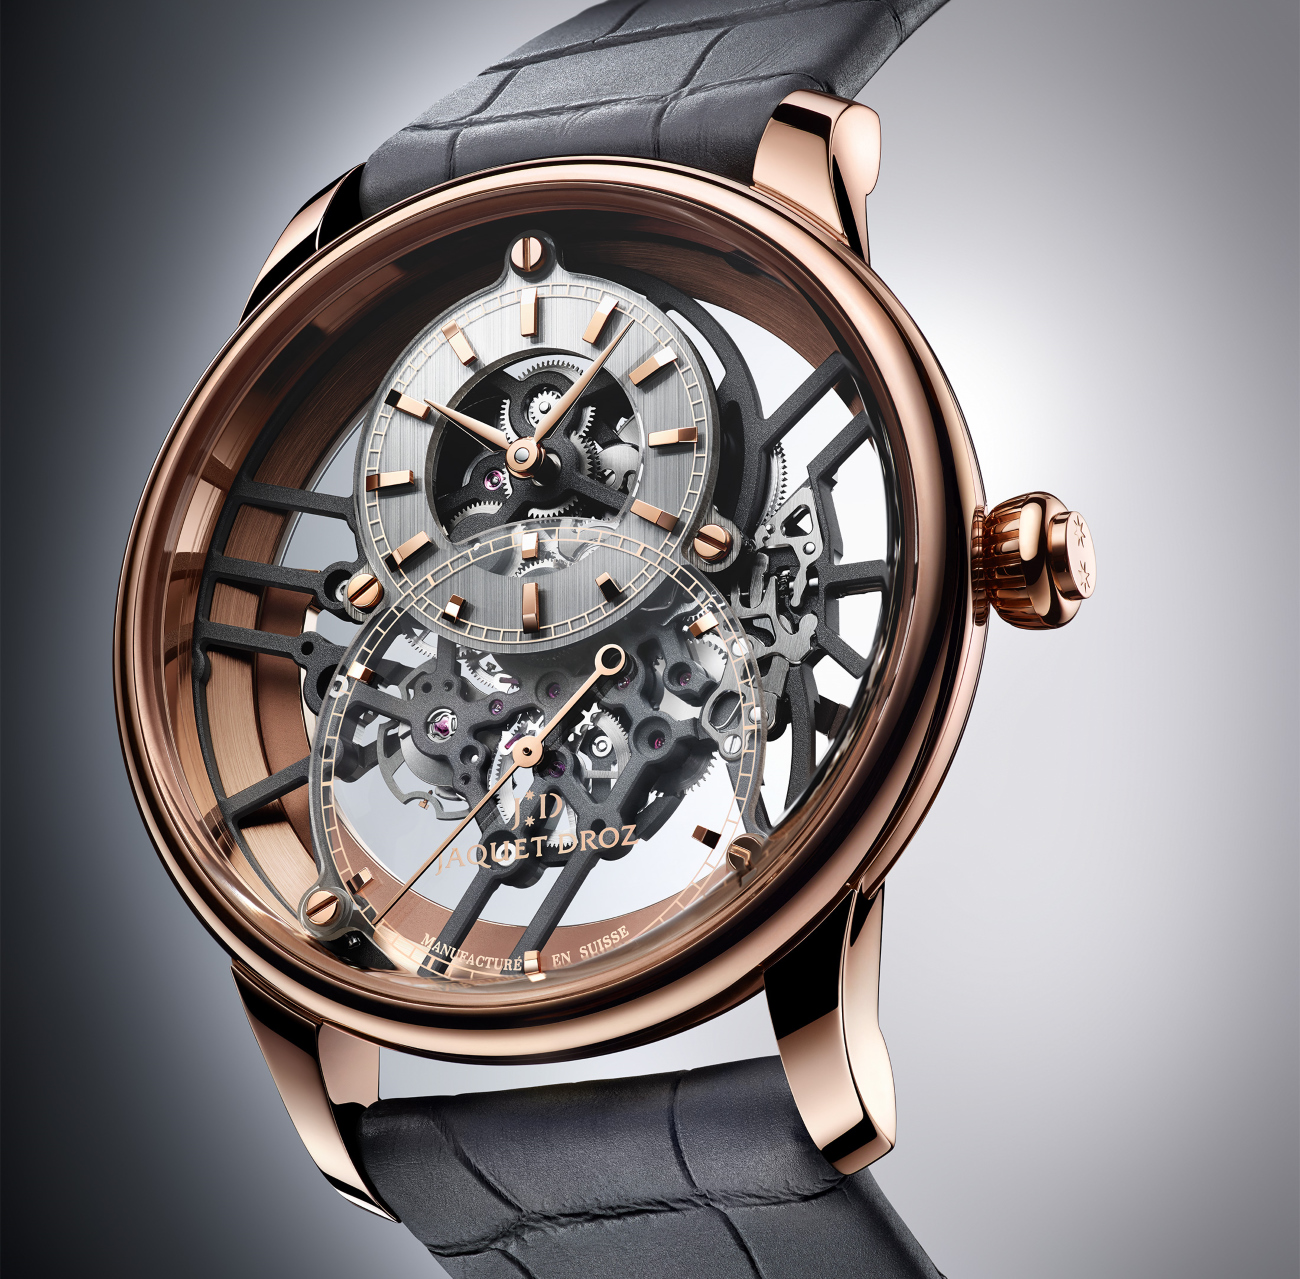 jaquet_droz_grande-seconde-skelet-one_ambiance_1_-_europa_star_watch_magazine_2020